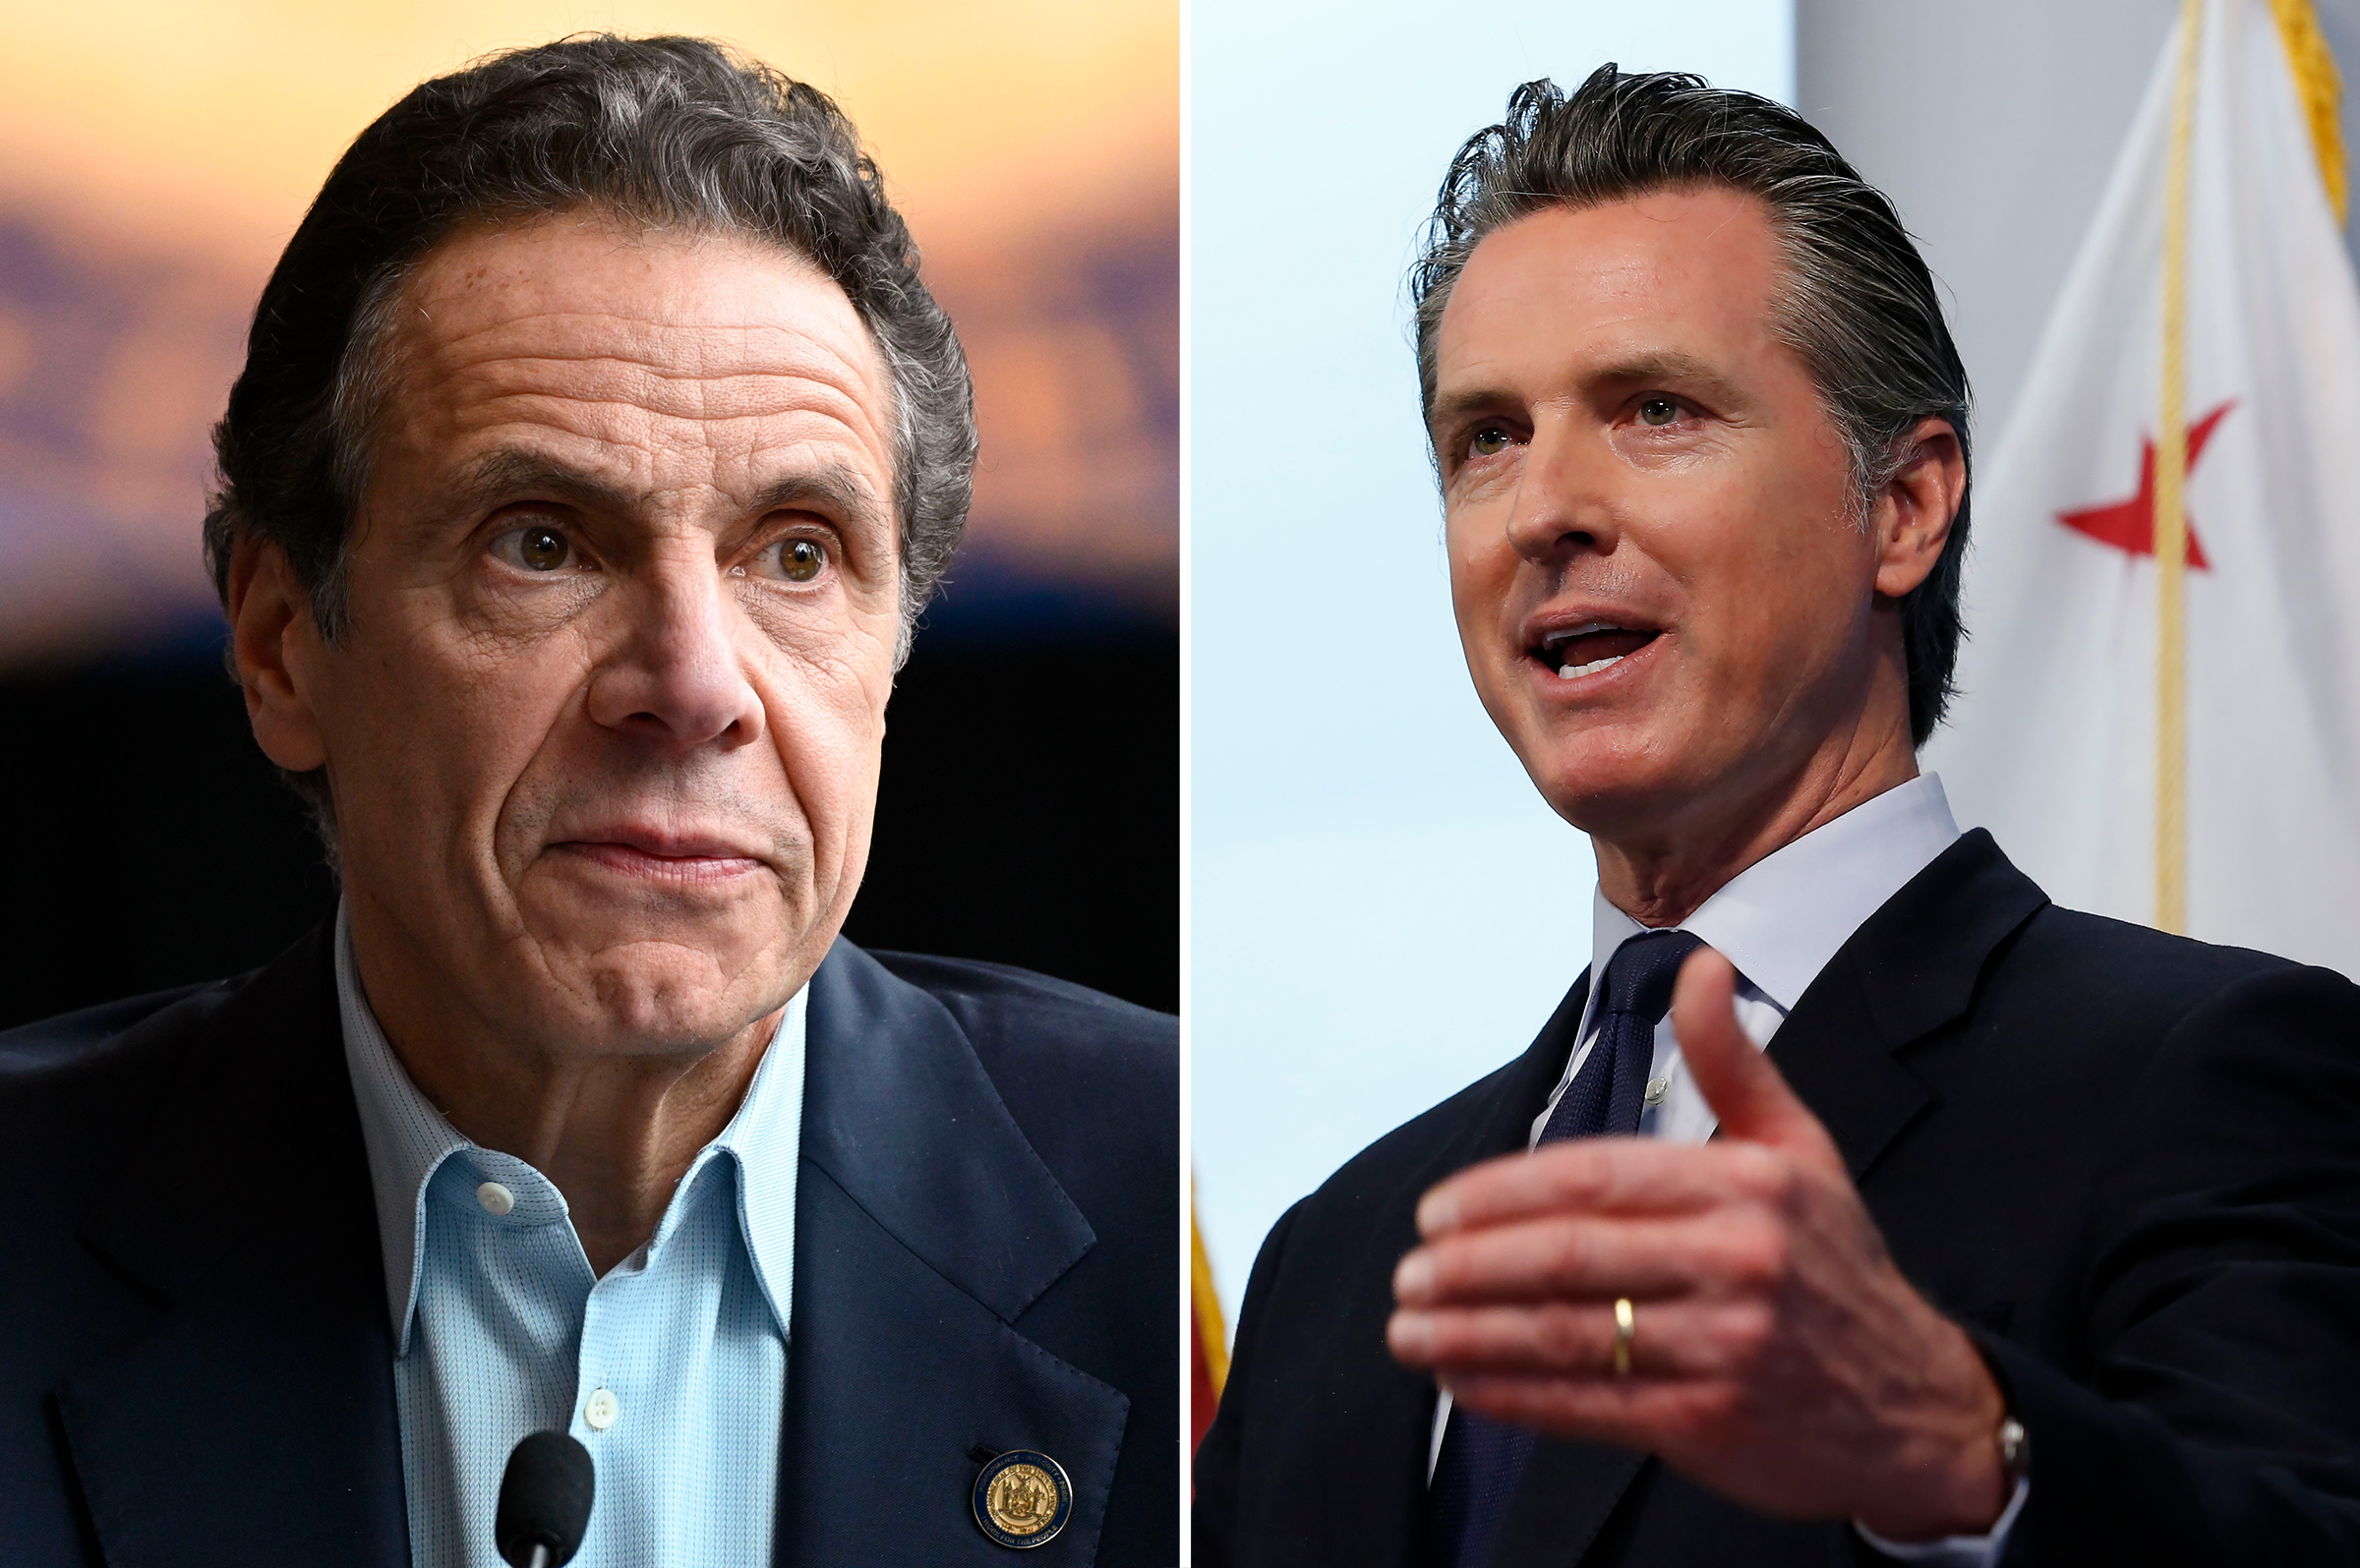 Andrew Cuomo holds a briefing on the COVID-19 response at the Jacob K. Javits Convention Center on March 30; Gavin Newsom updates the state's response to the coronavirus at the Governor's Office of Emergency Services in Rancho Cordova, CA, March 30